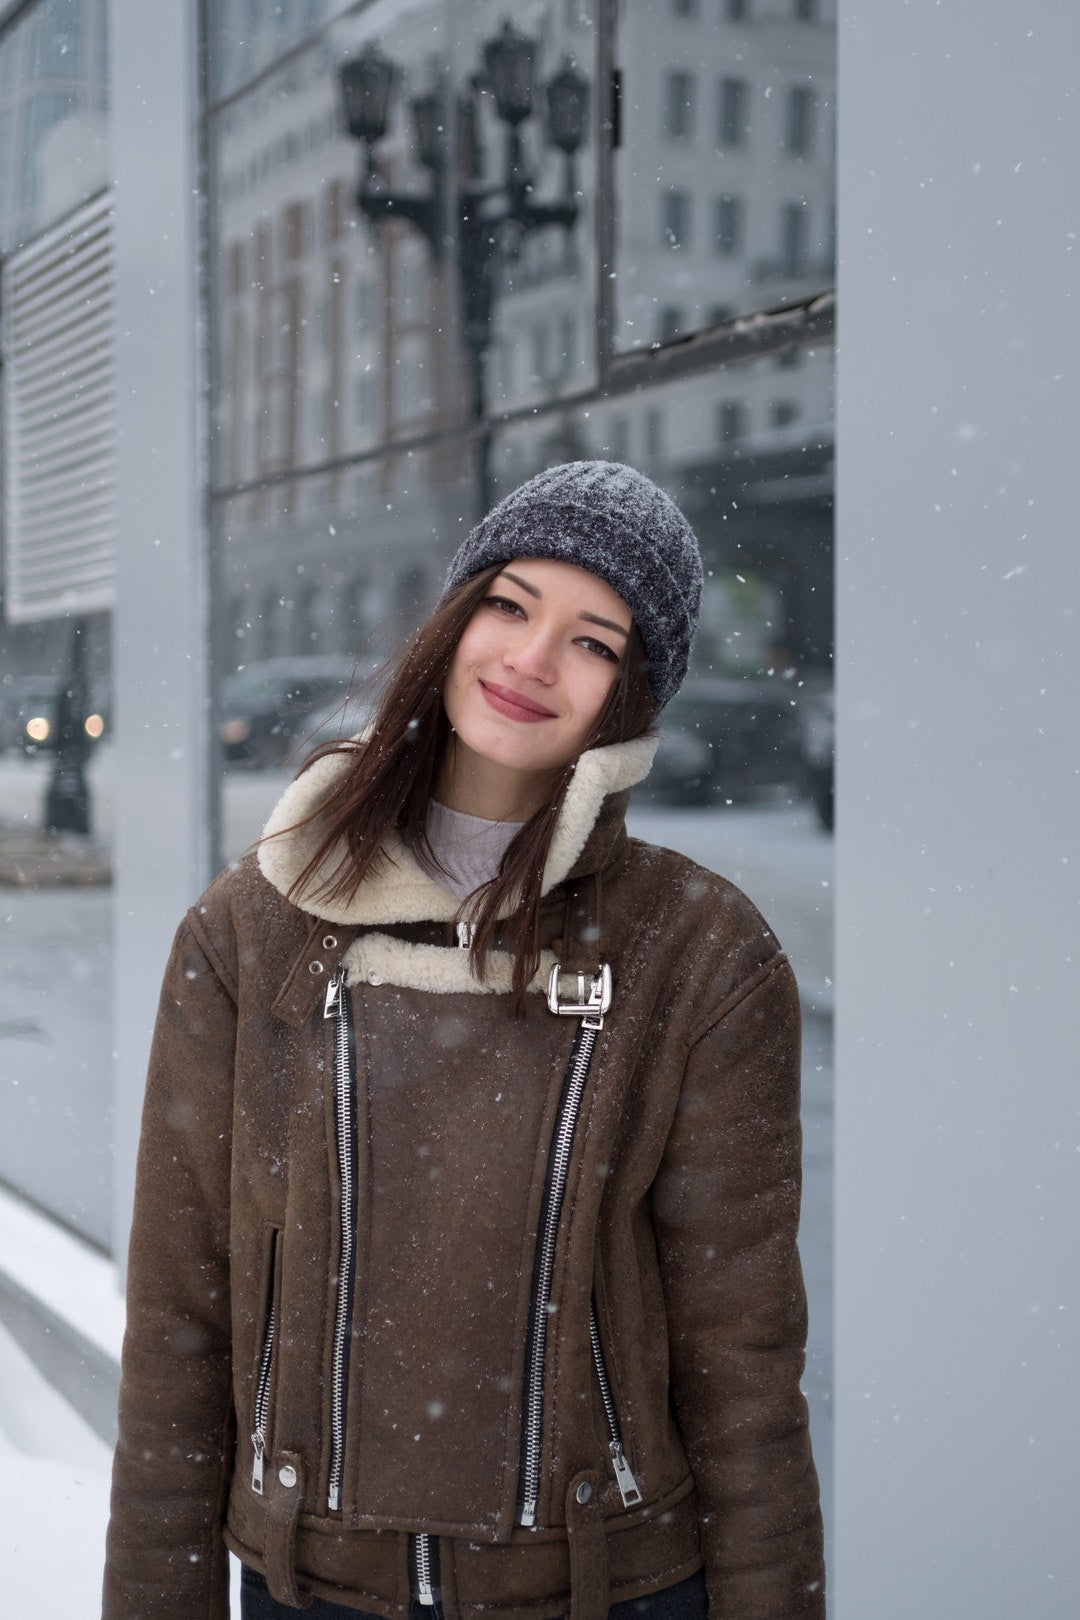 Get Your Pretty On: 7 Winter Fashion Tips To Keep You Cozy and Cute